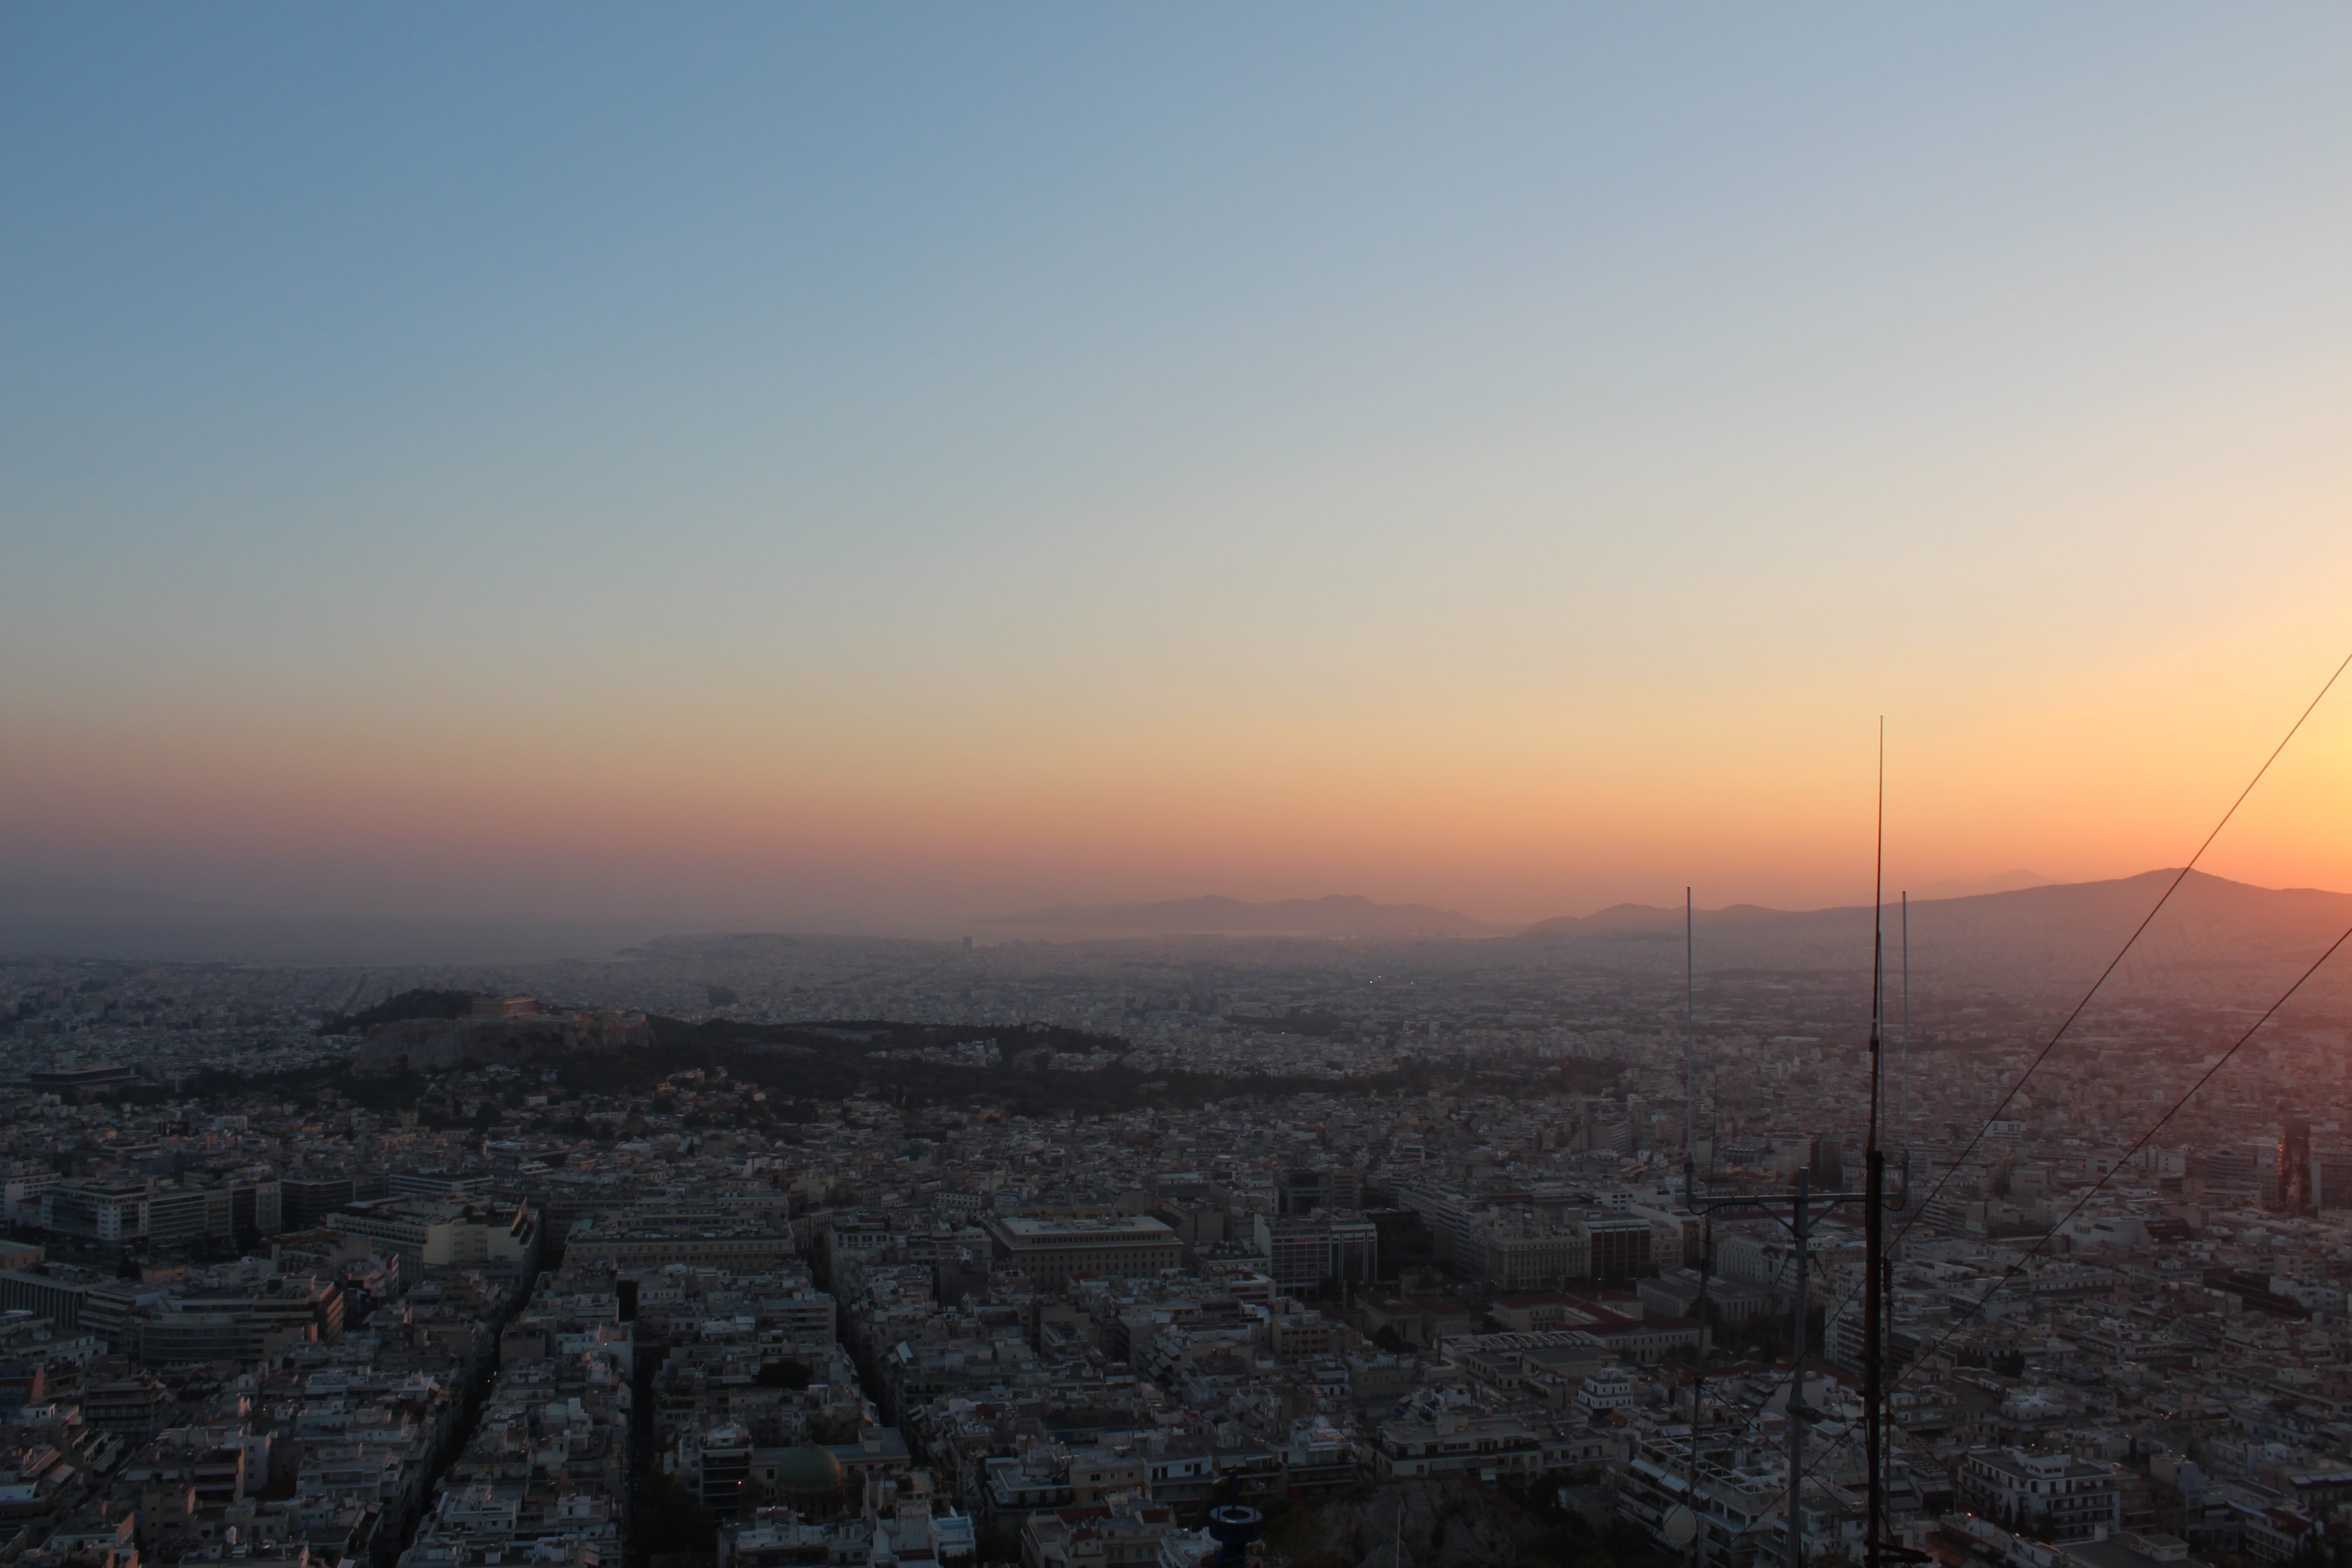 the sunset over Athens, Greece from the summit of Mt. Lycabettus